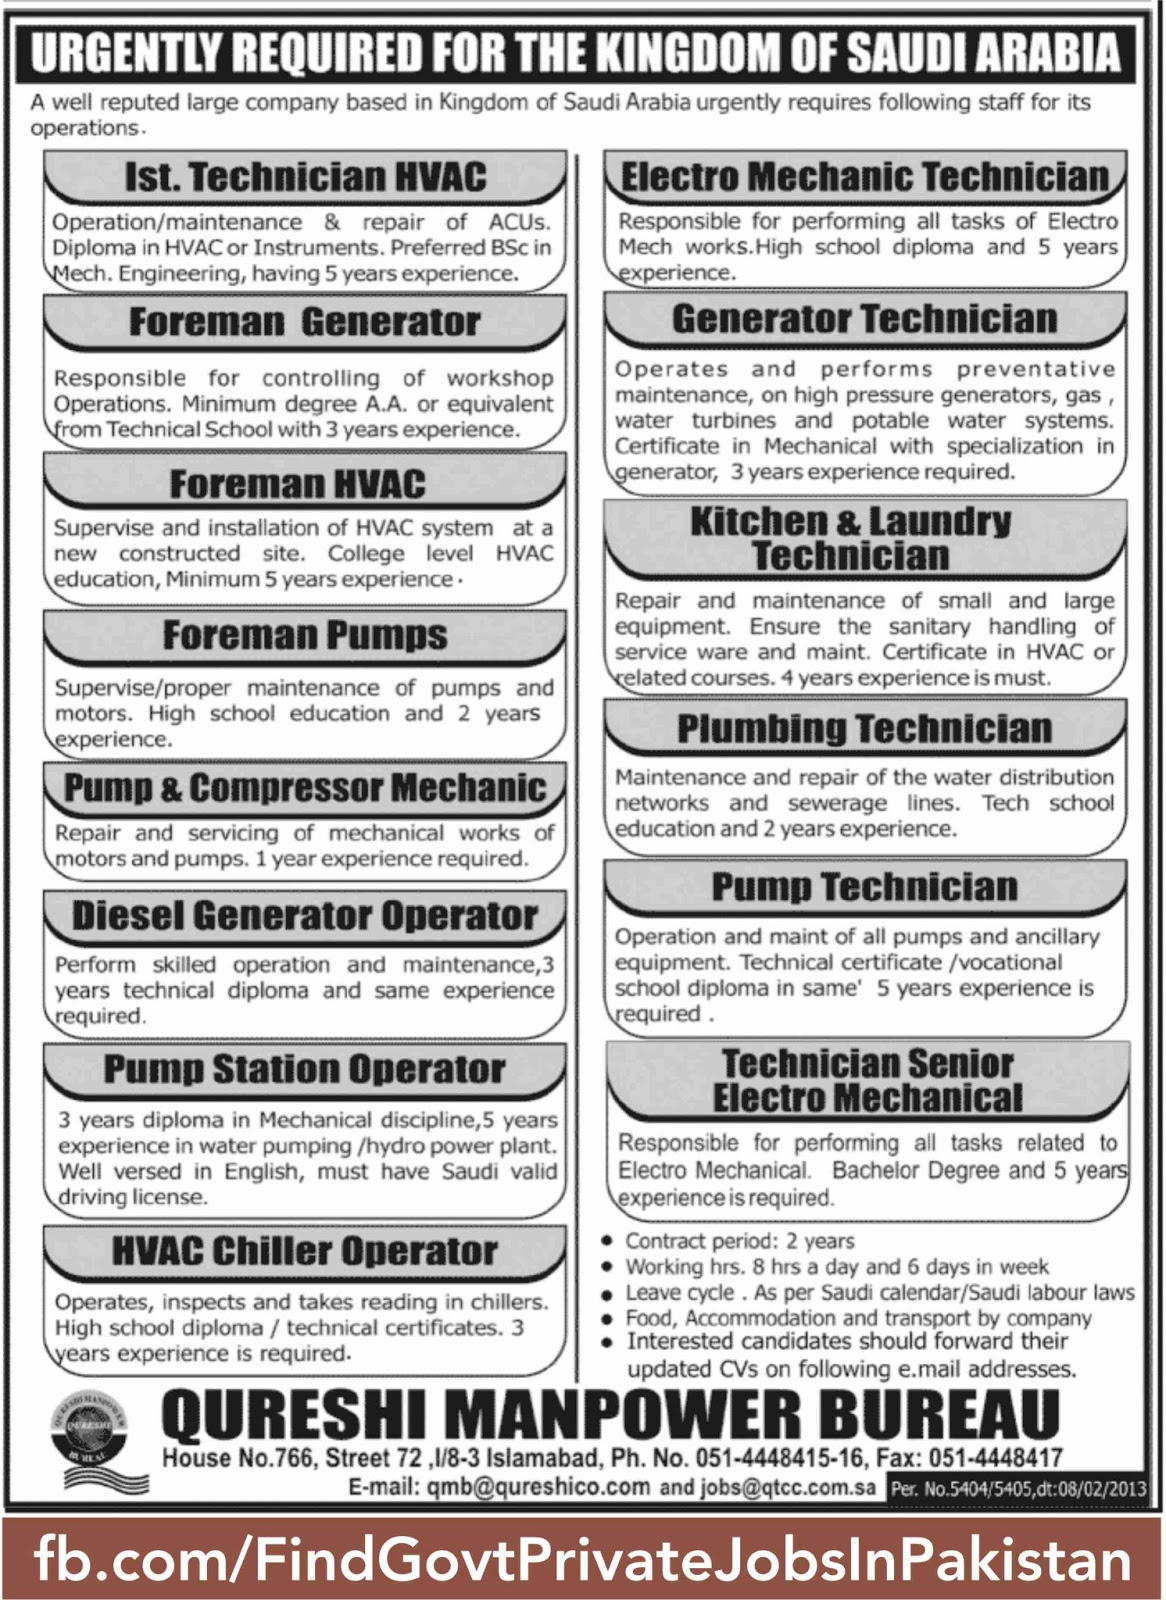 urgenetly required staff for saudia arabia